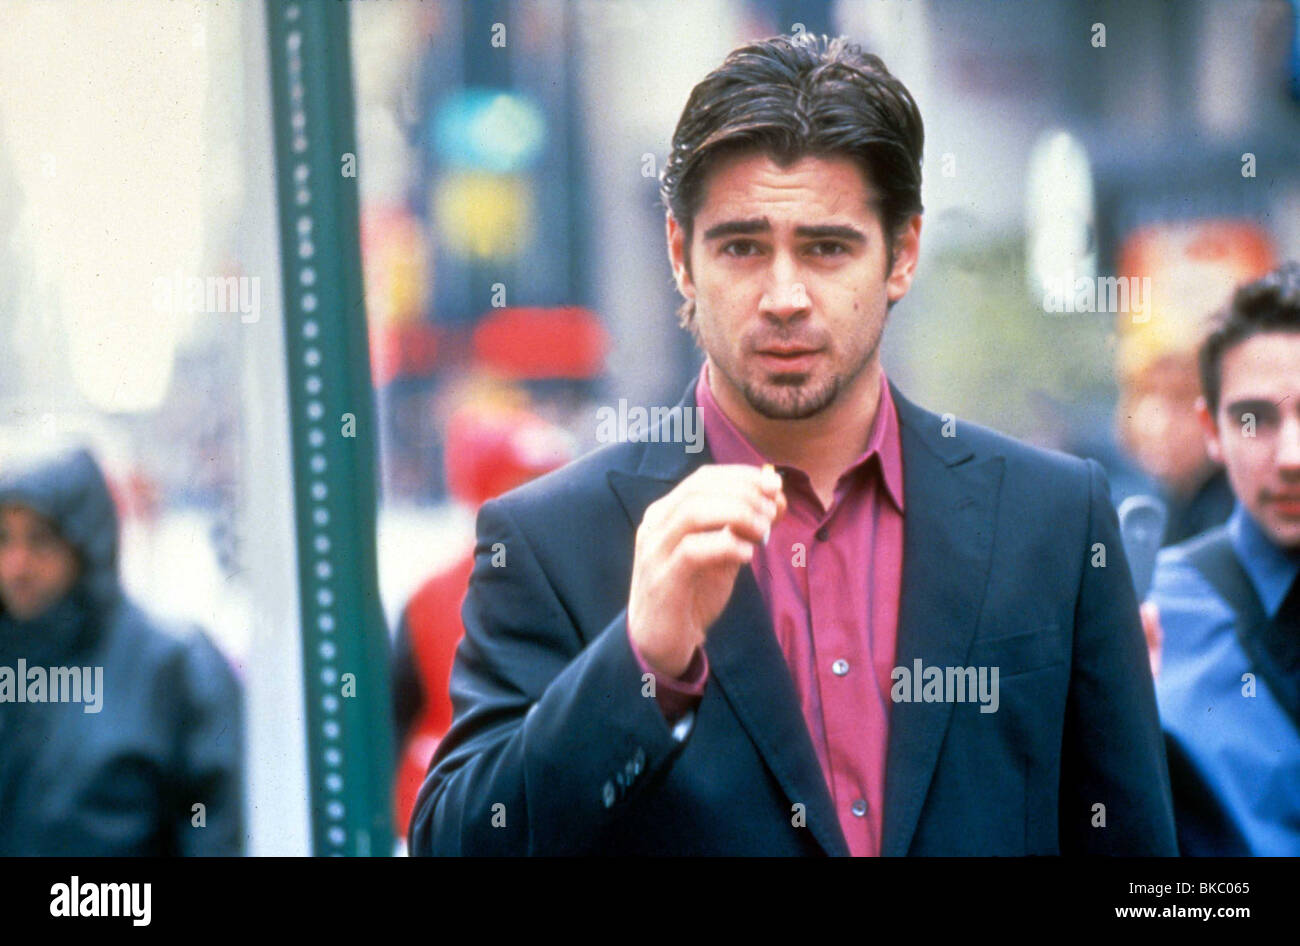 PHONE BOOTH -2001 COLIN FARRELL - Stock Image